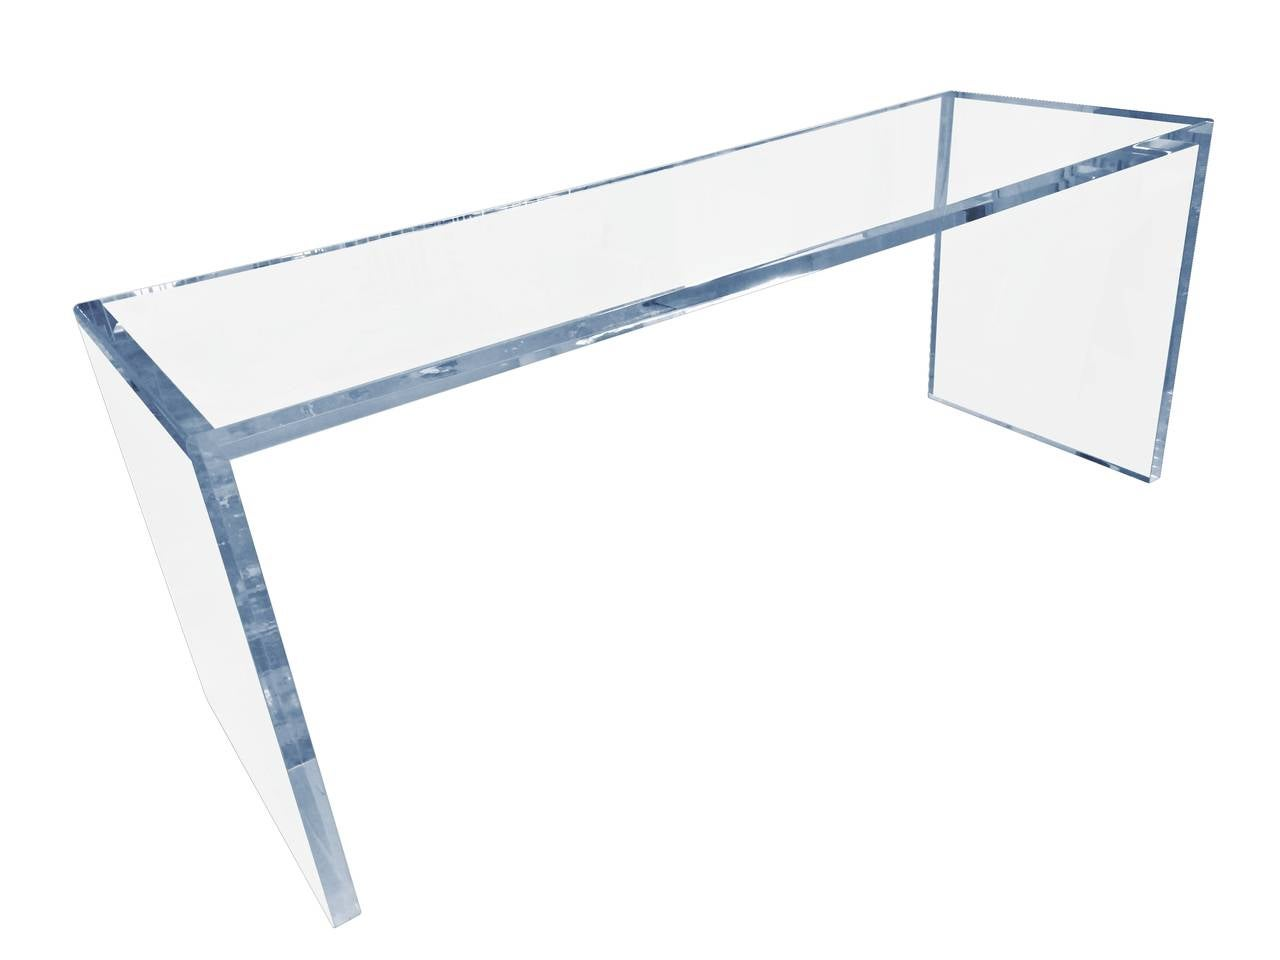 Stunning and beautiful console table designed and manufactured by the Cain Modern Studio. The table has wonderful lines, the table is 1 1/2